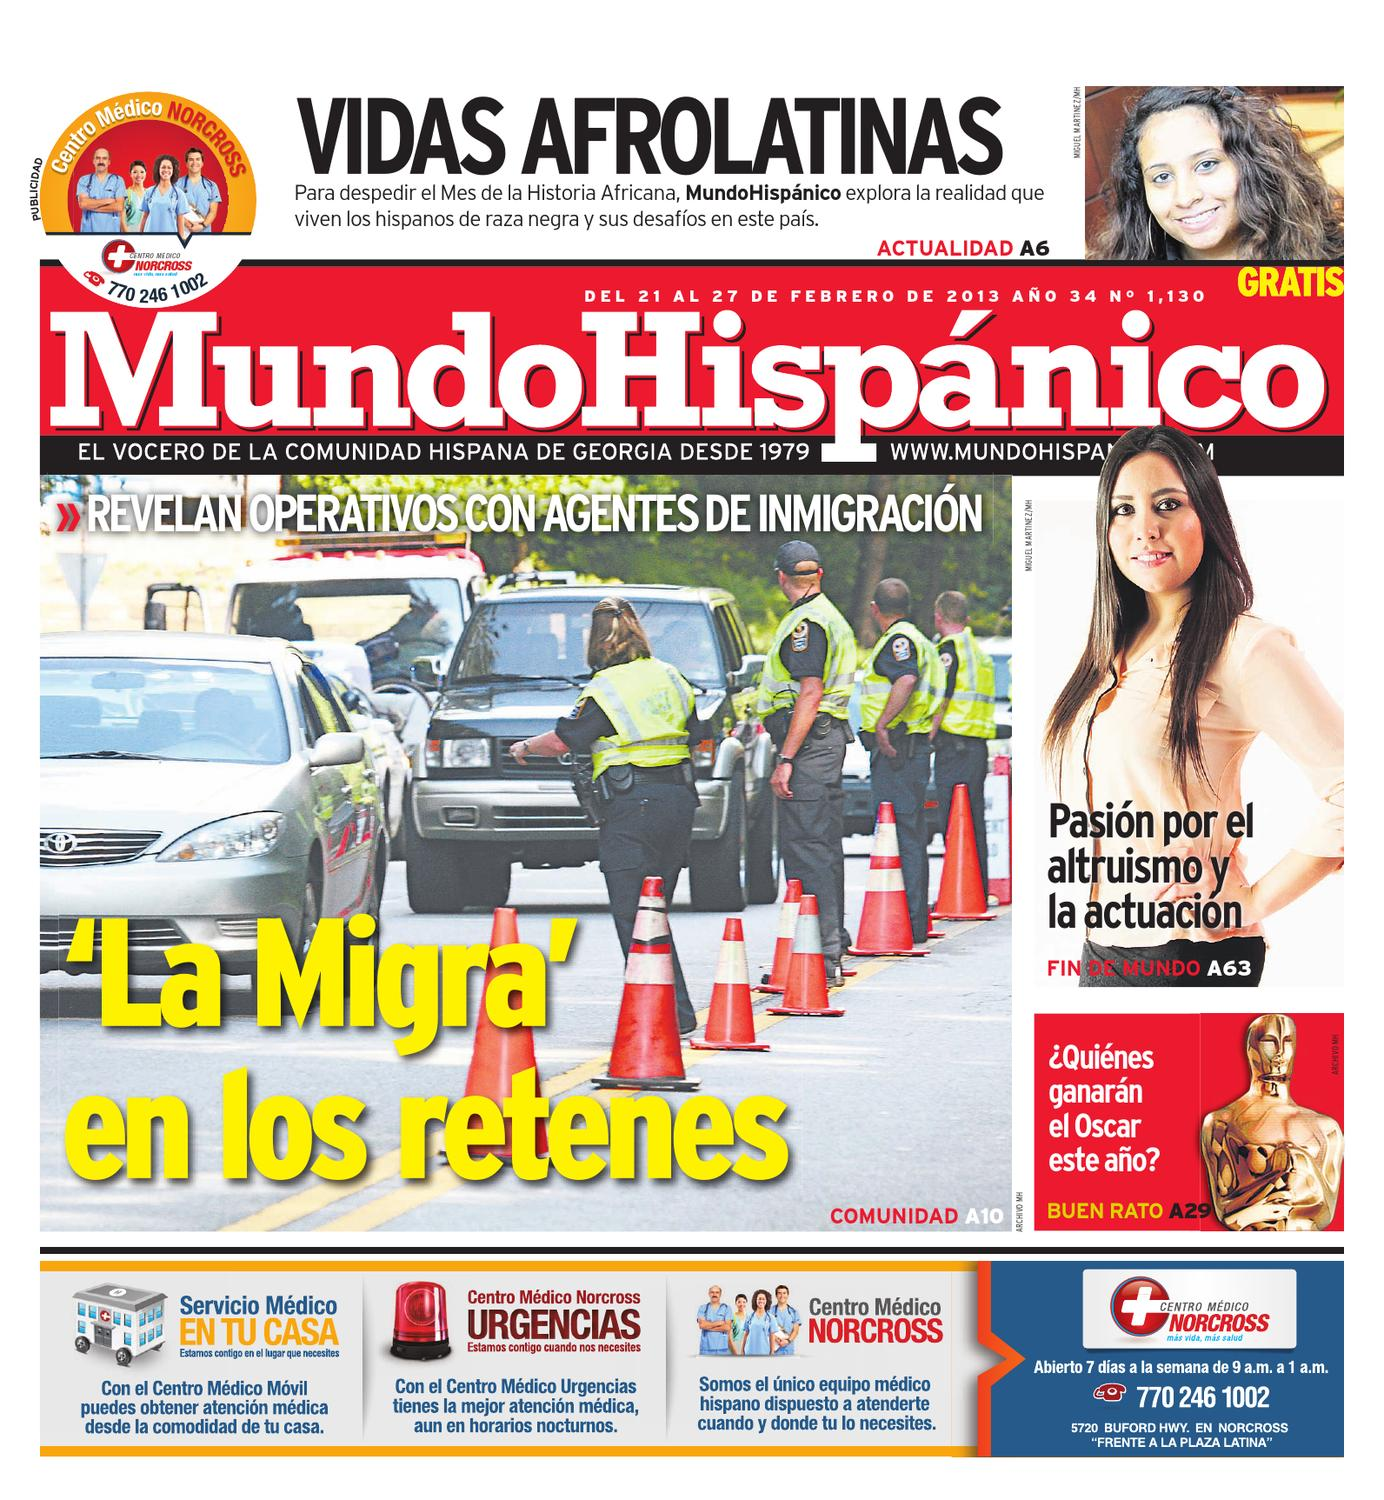 Mundo Hispanico - 02-21-13 by MUNDO HISPANICO - issuu